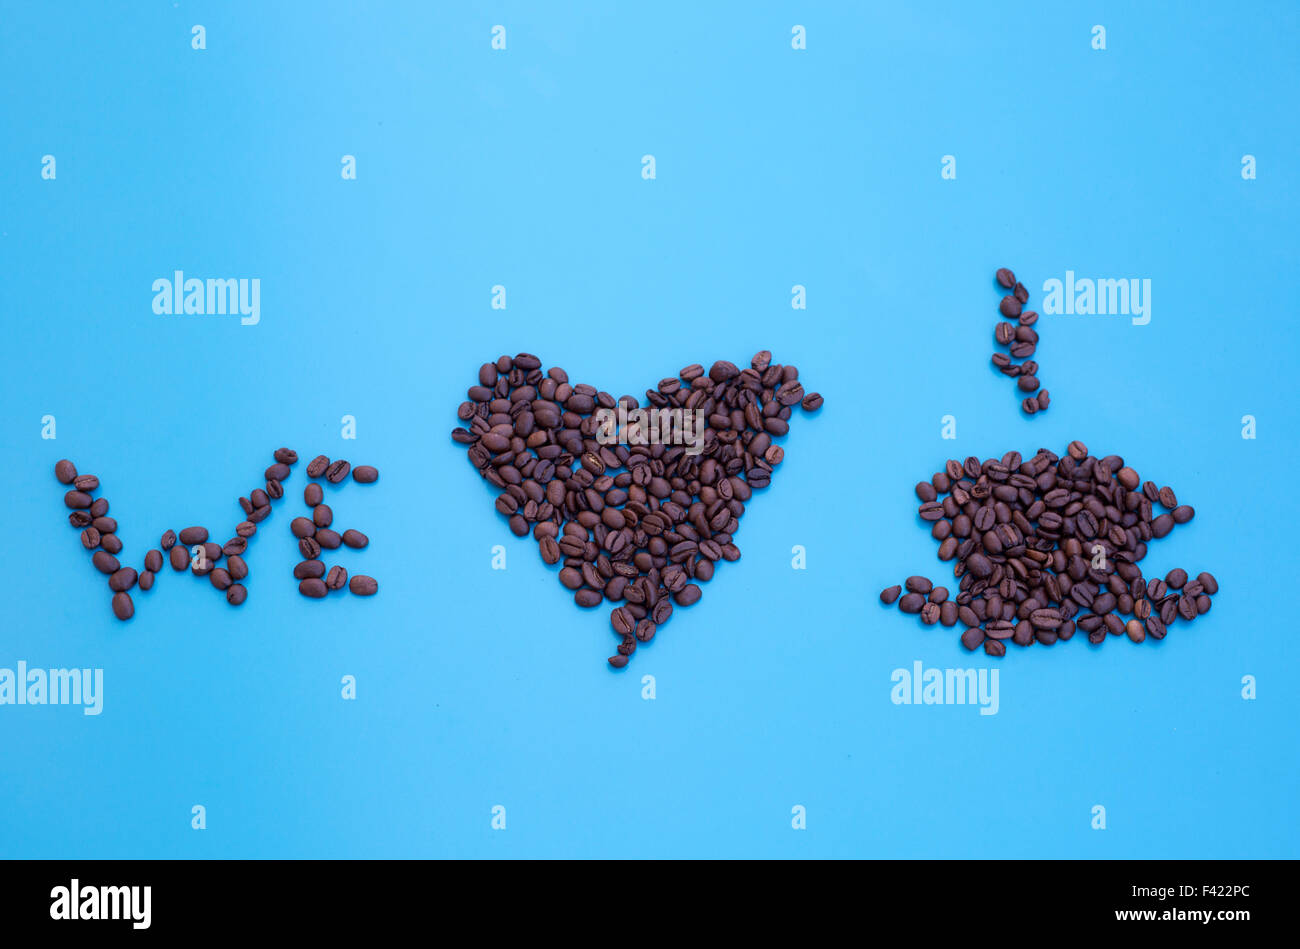 Fresh Coffee Beverage Meaning Cup Stock Photos & Fresh Coffee